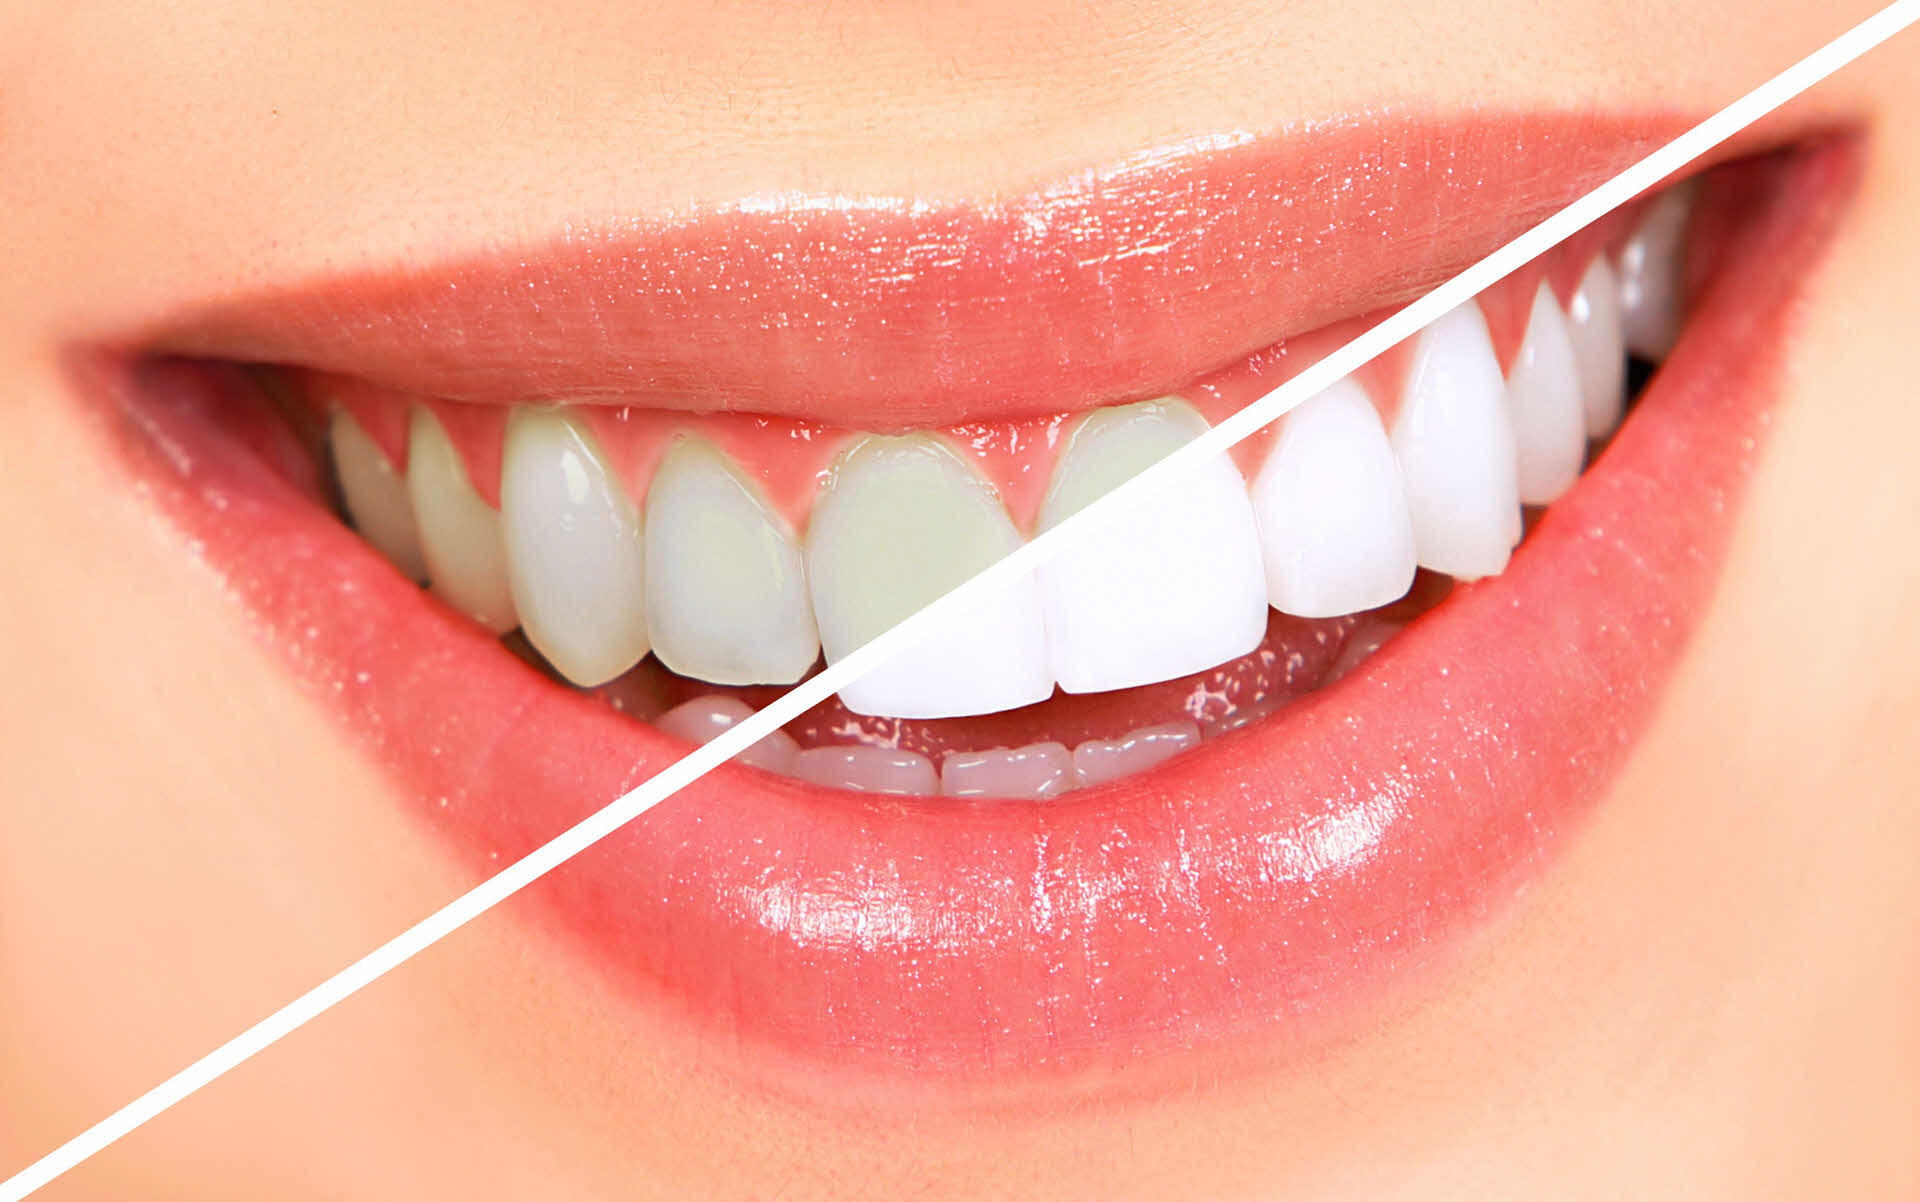 clareamento dental - Quanto custa um clareamento dental?